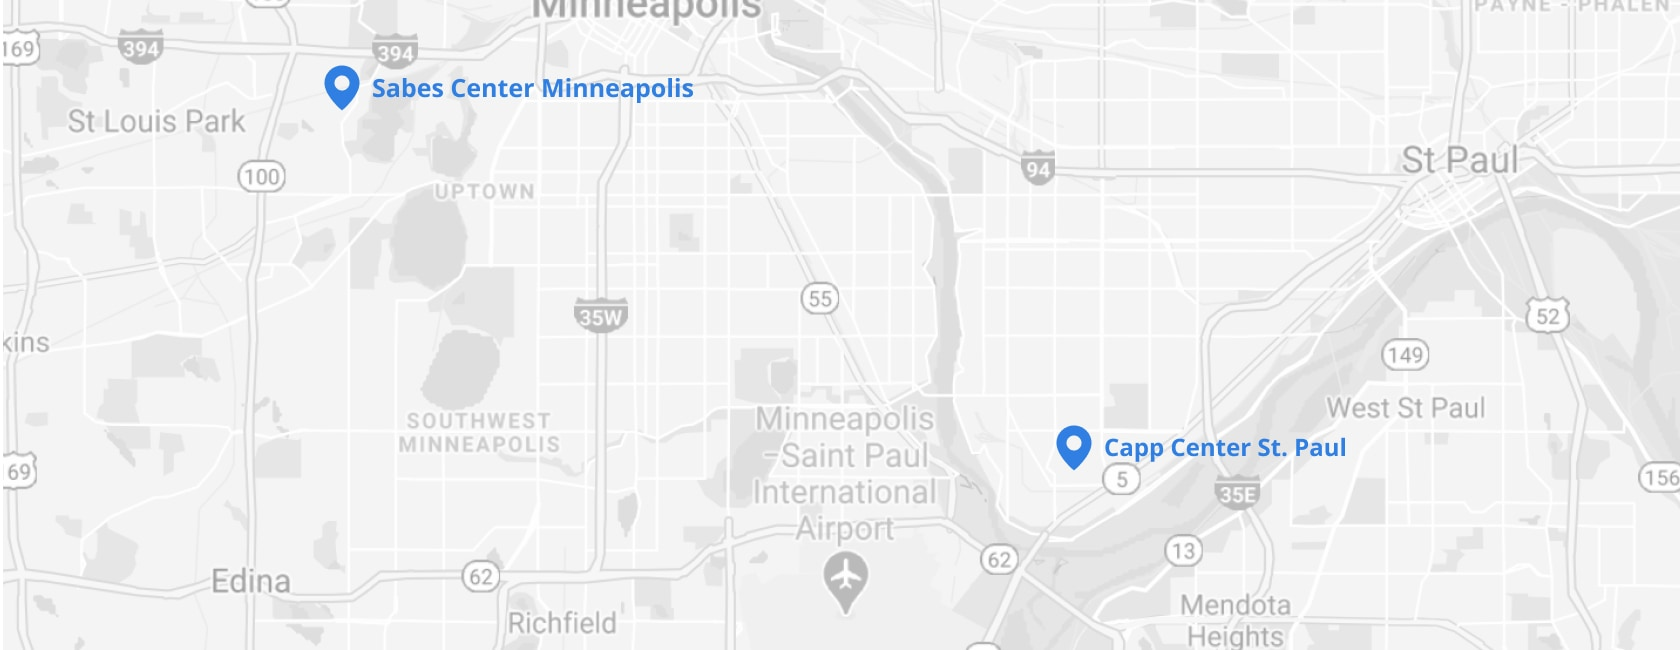 map image of Minnesota JCC locations